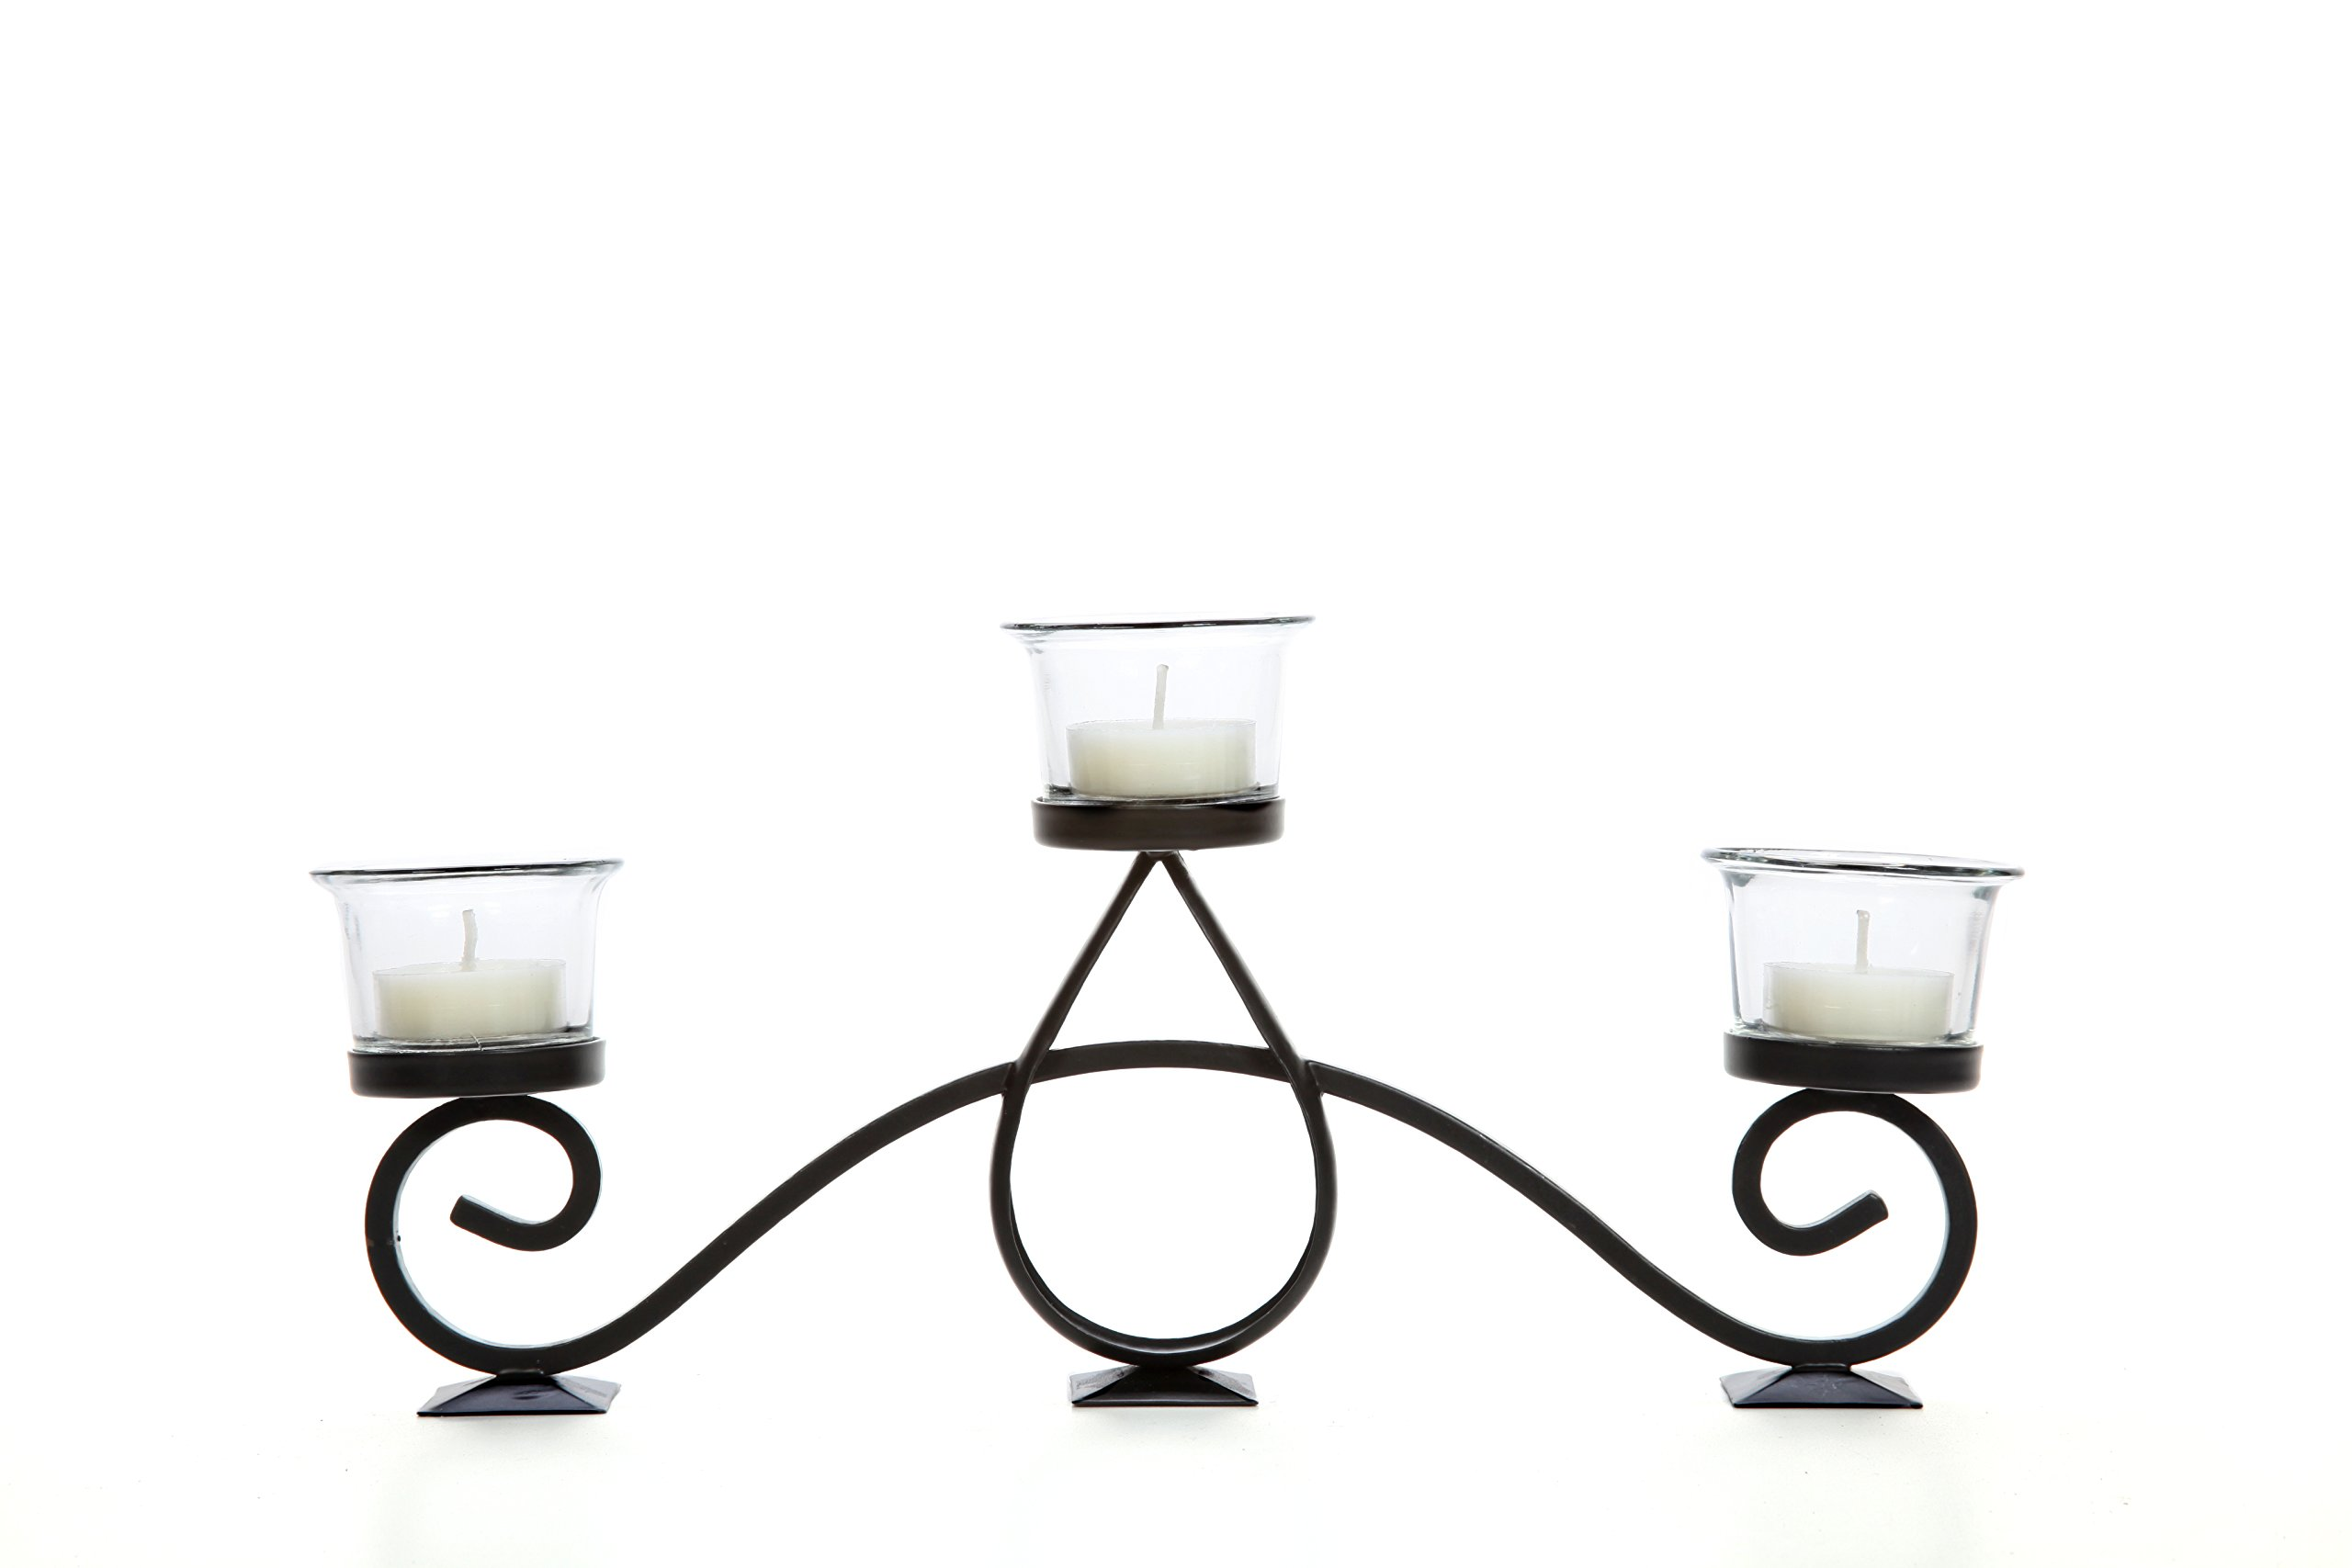 Hosley Teardrop Scroll Tealight Holder- 13'' Long. Ideal Gift for Fireplace, Family Room, Spa, Aromatherapy, Votive Candle Gardens. P2